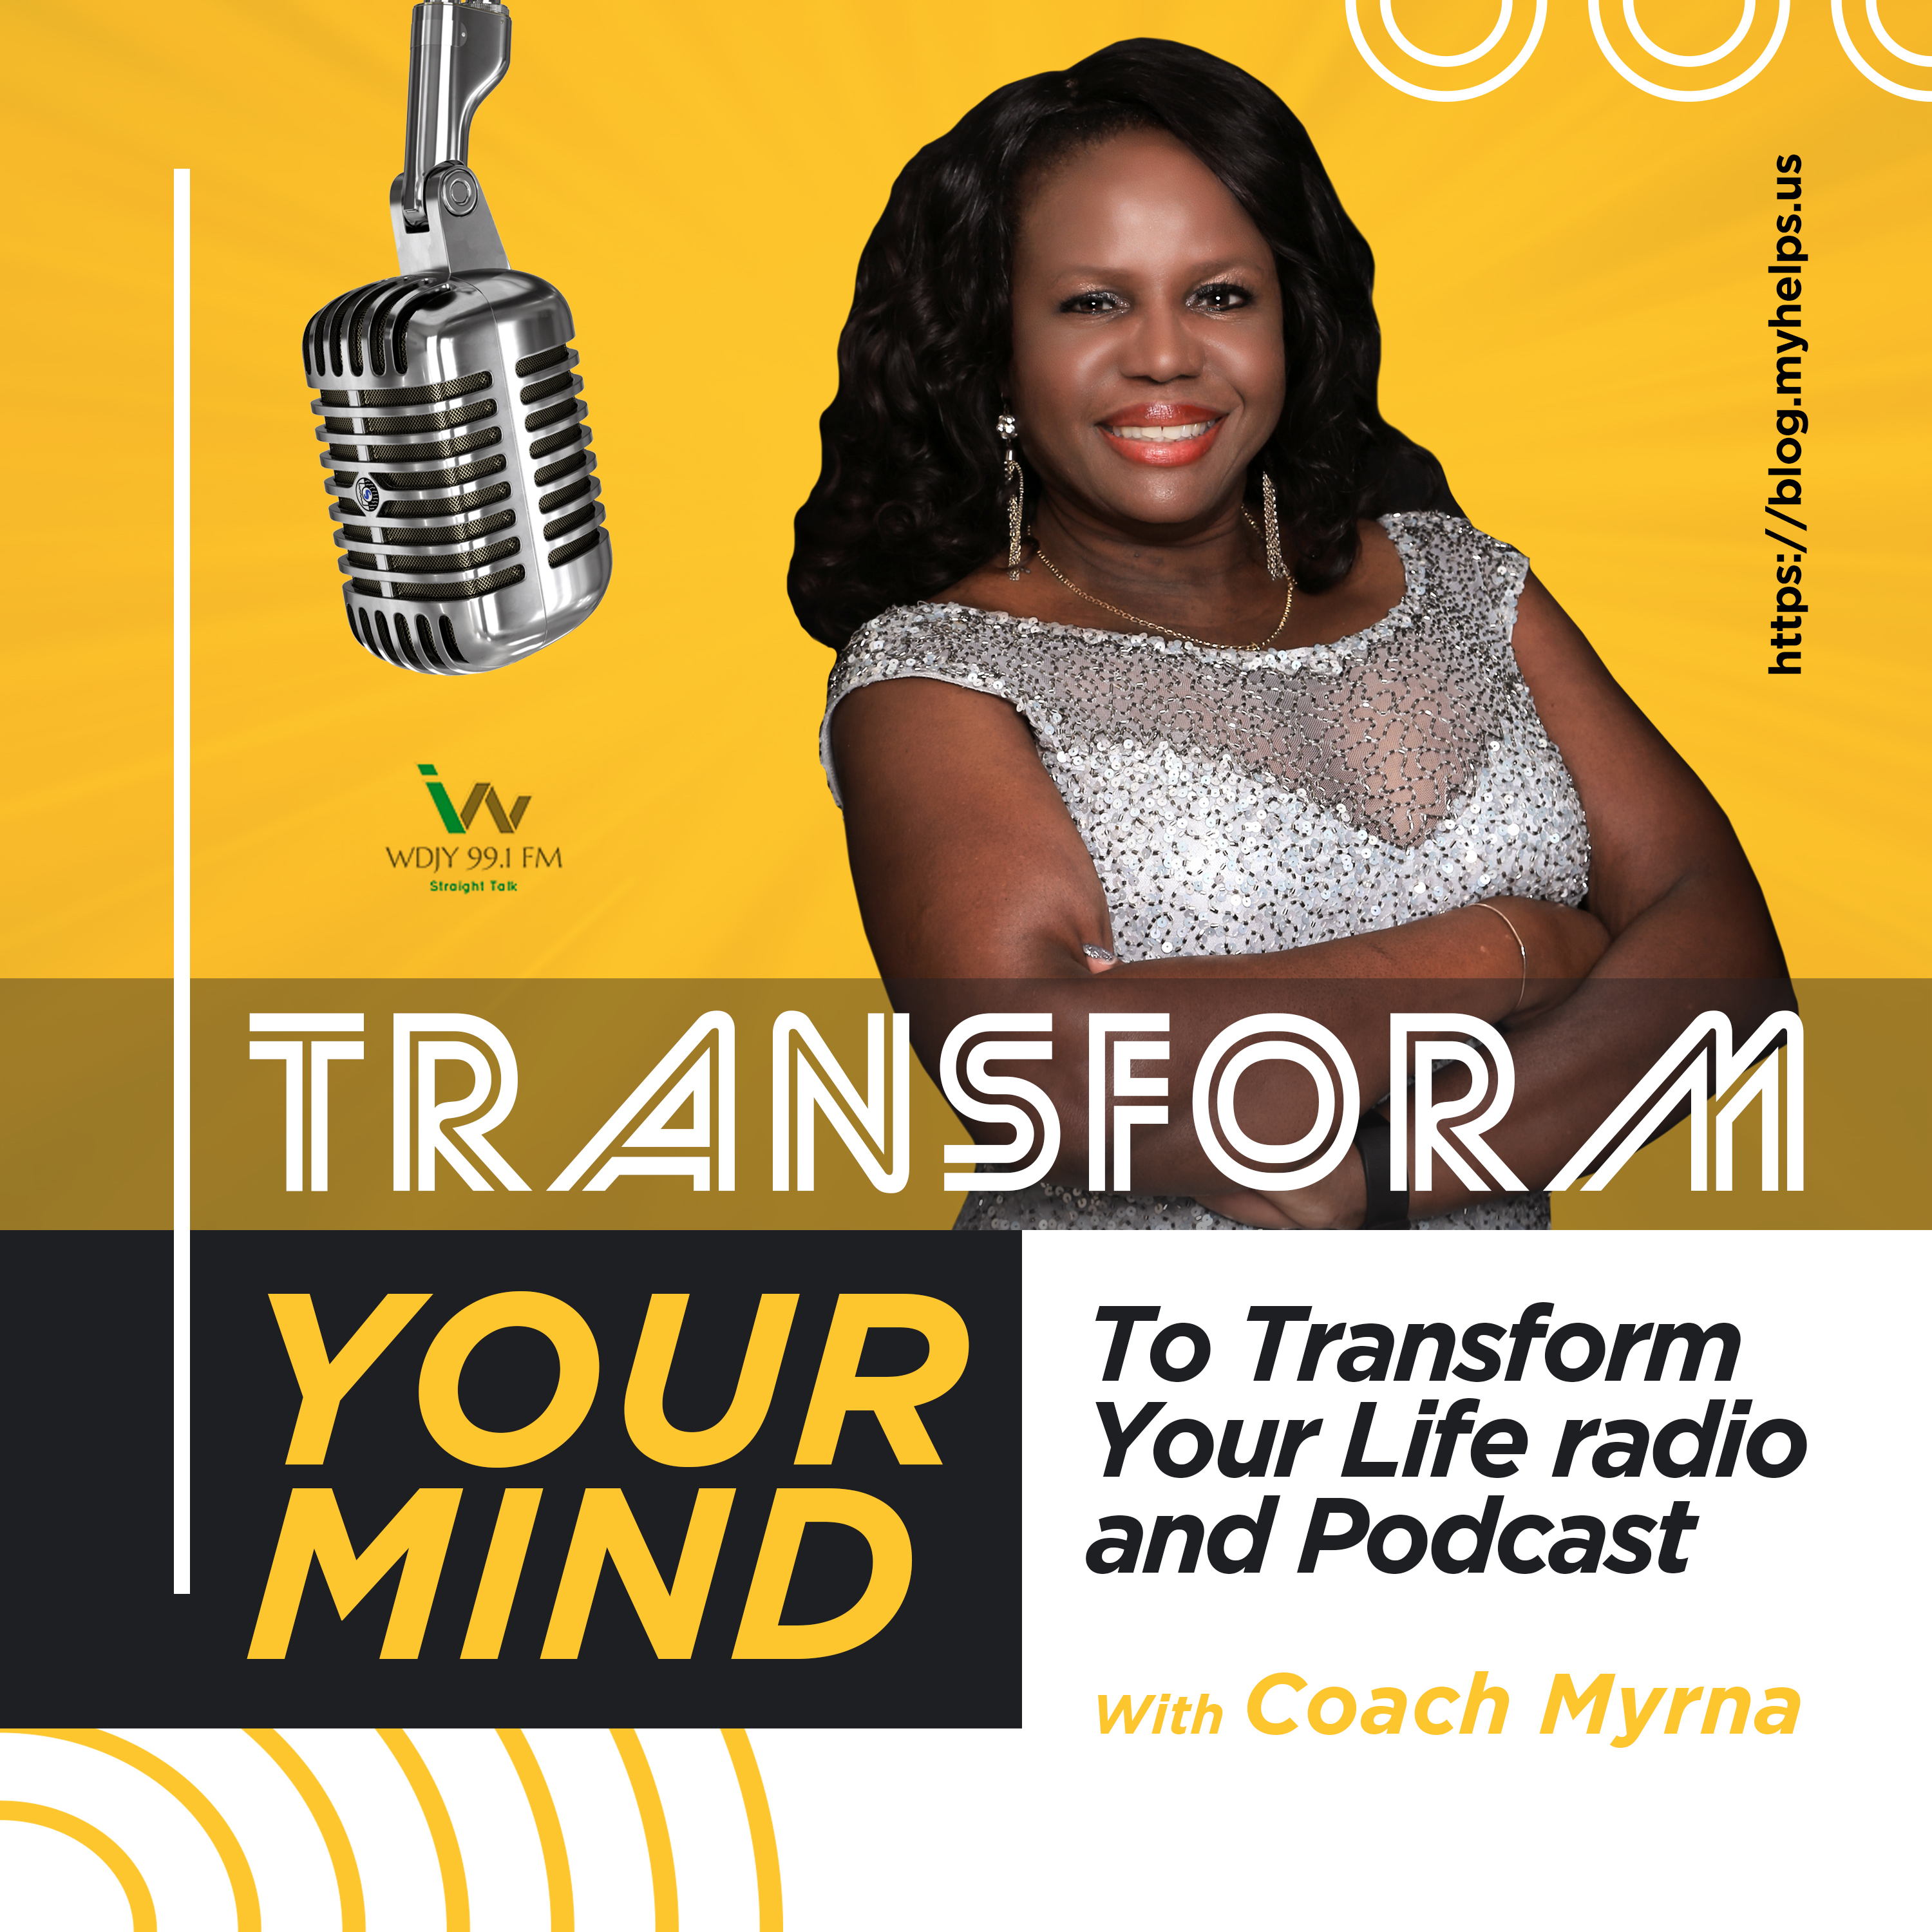 Life Coach Myrna Young